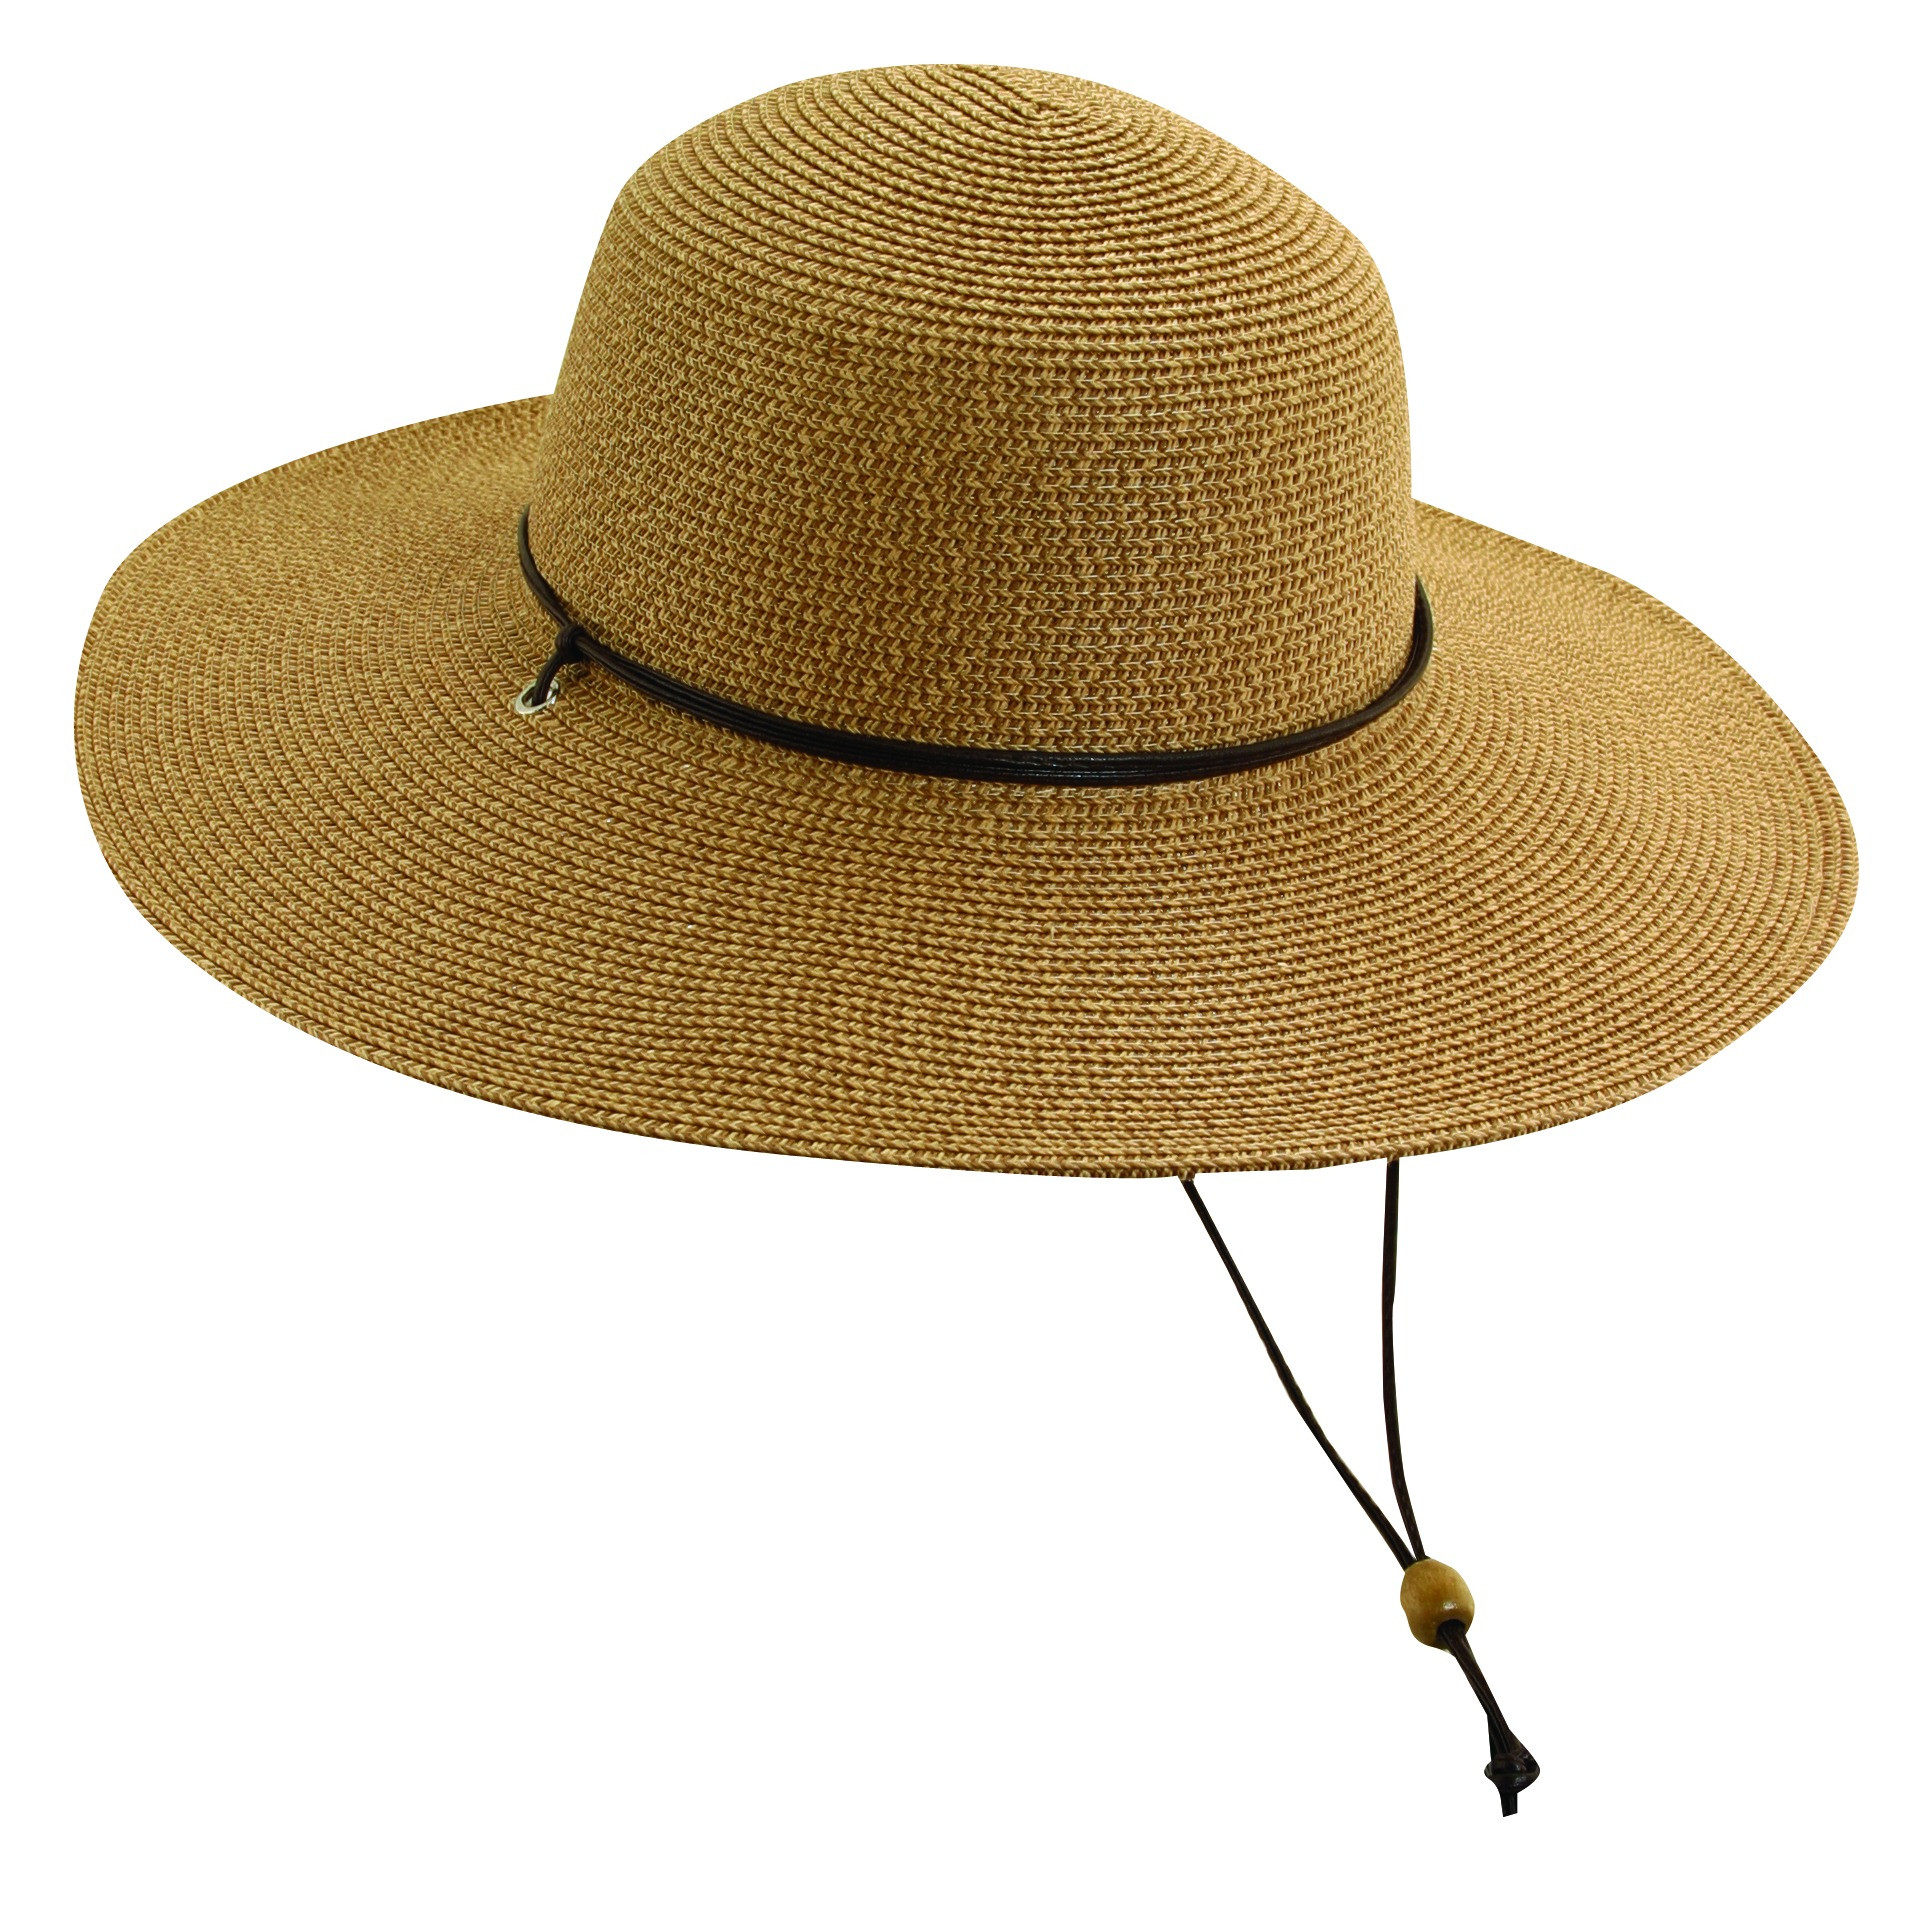 paper braid sun hat with chin cord explorer hats